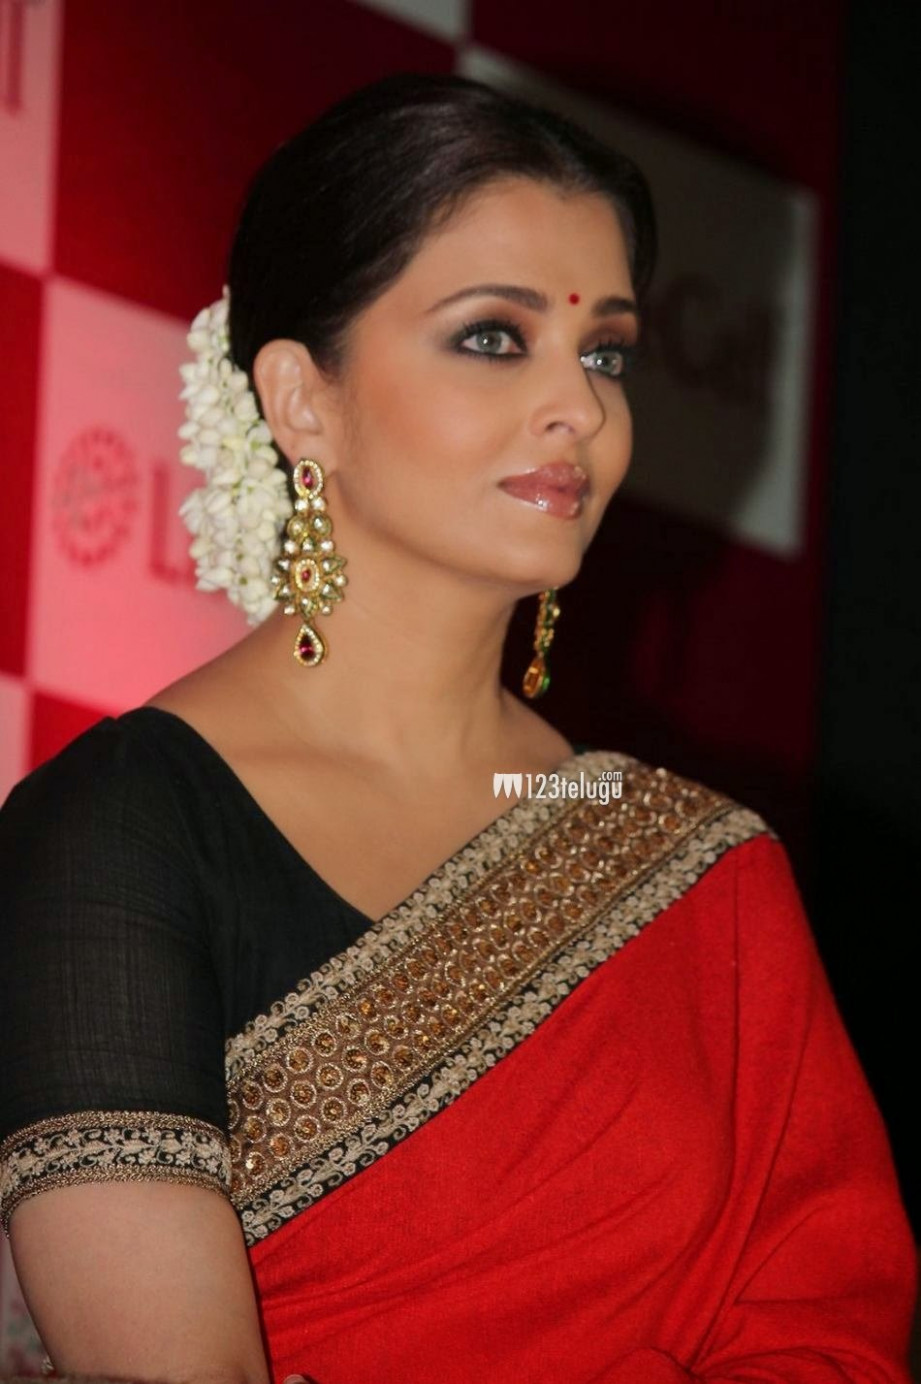 Aishwarya Rai Hot and Sexy in Red Saree Unseen Pics  Hot